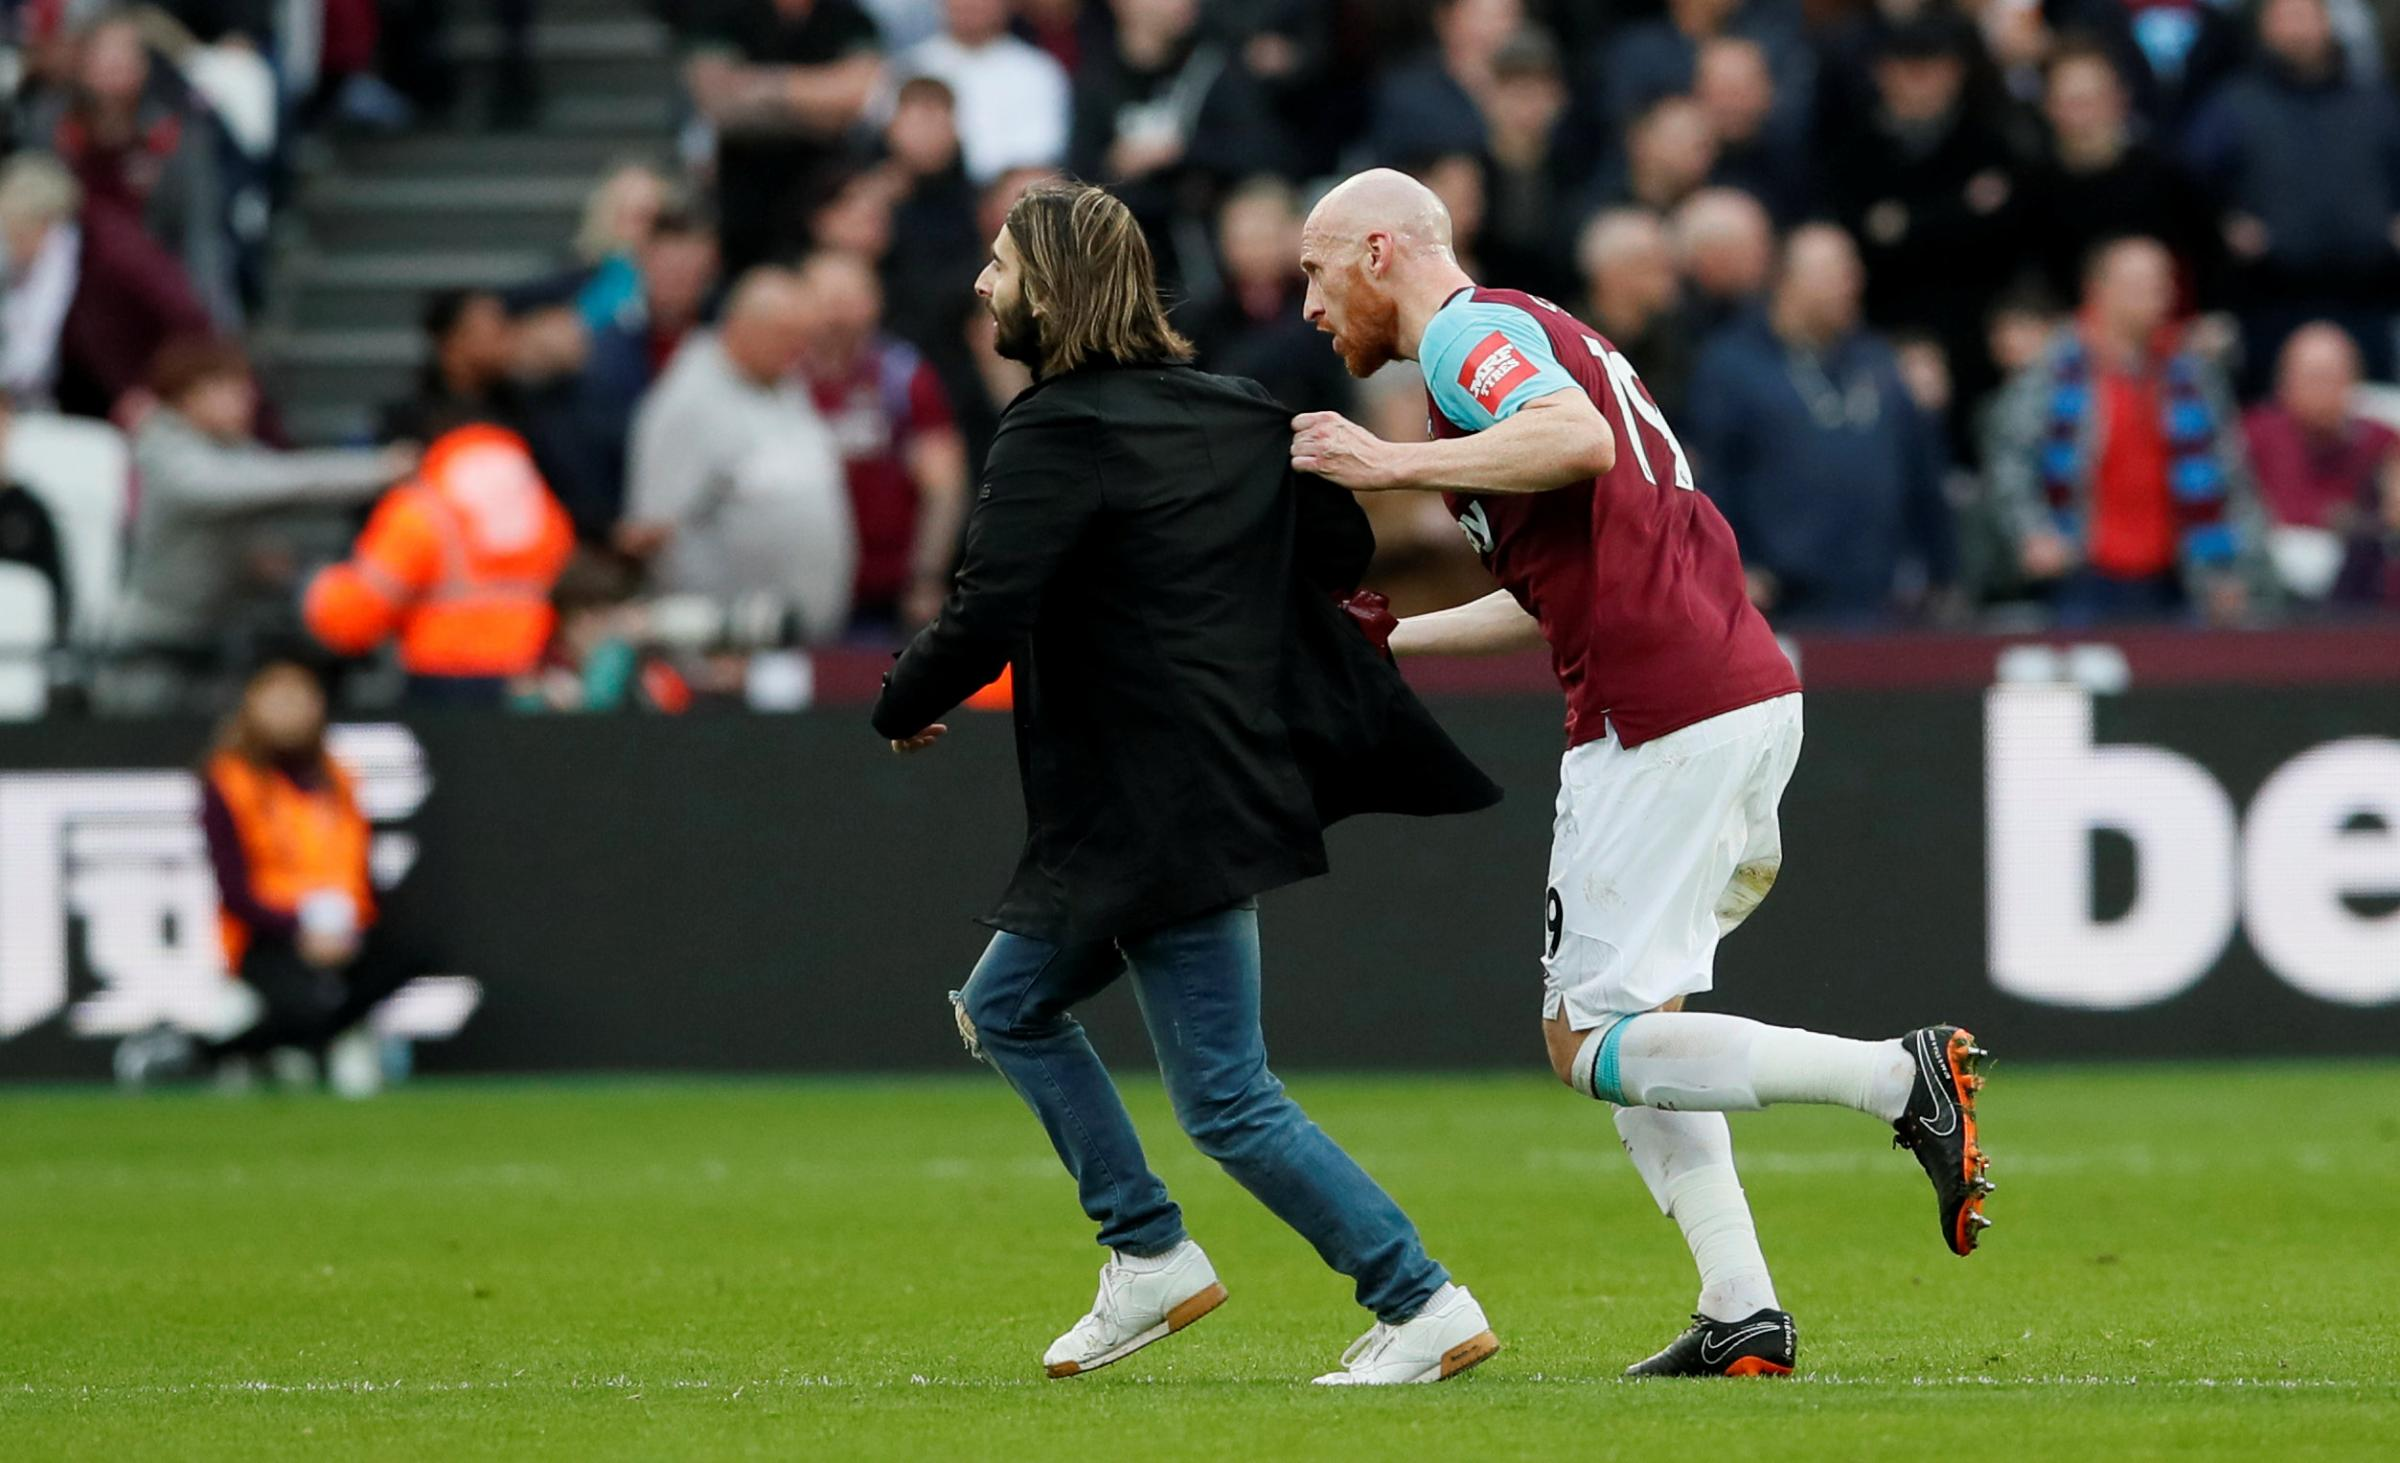 James Collins clashes with a pitch invader. Picture: Action Images